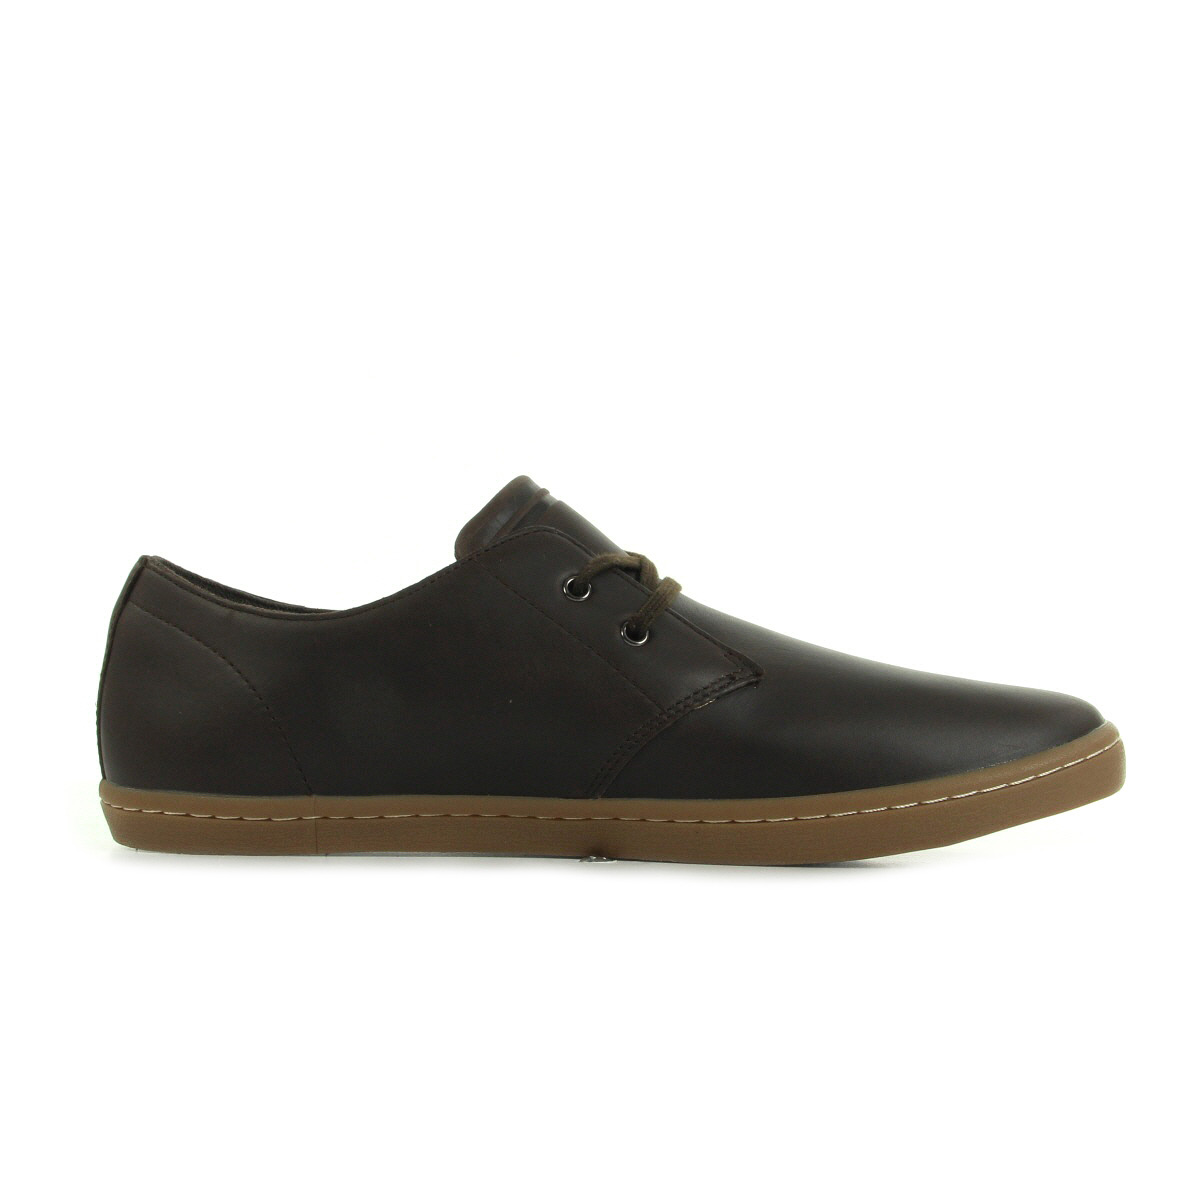 fred perry byron low leather b9076325 chaussures homme homme. Black Bedroom Furniture Sets. Home Design Ideas